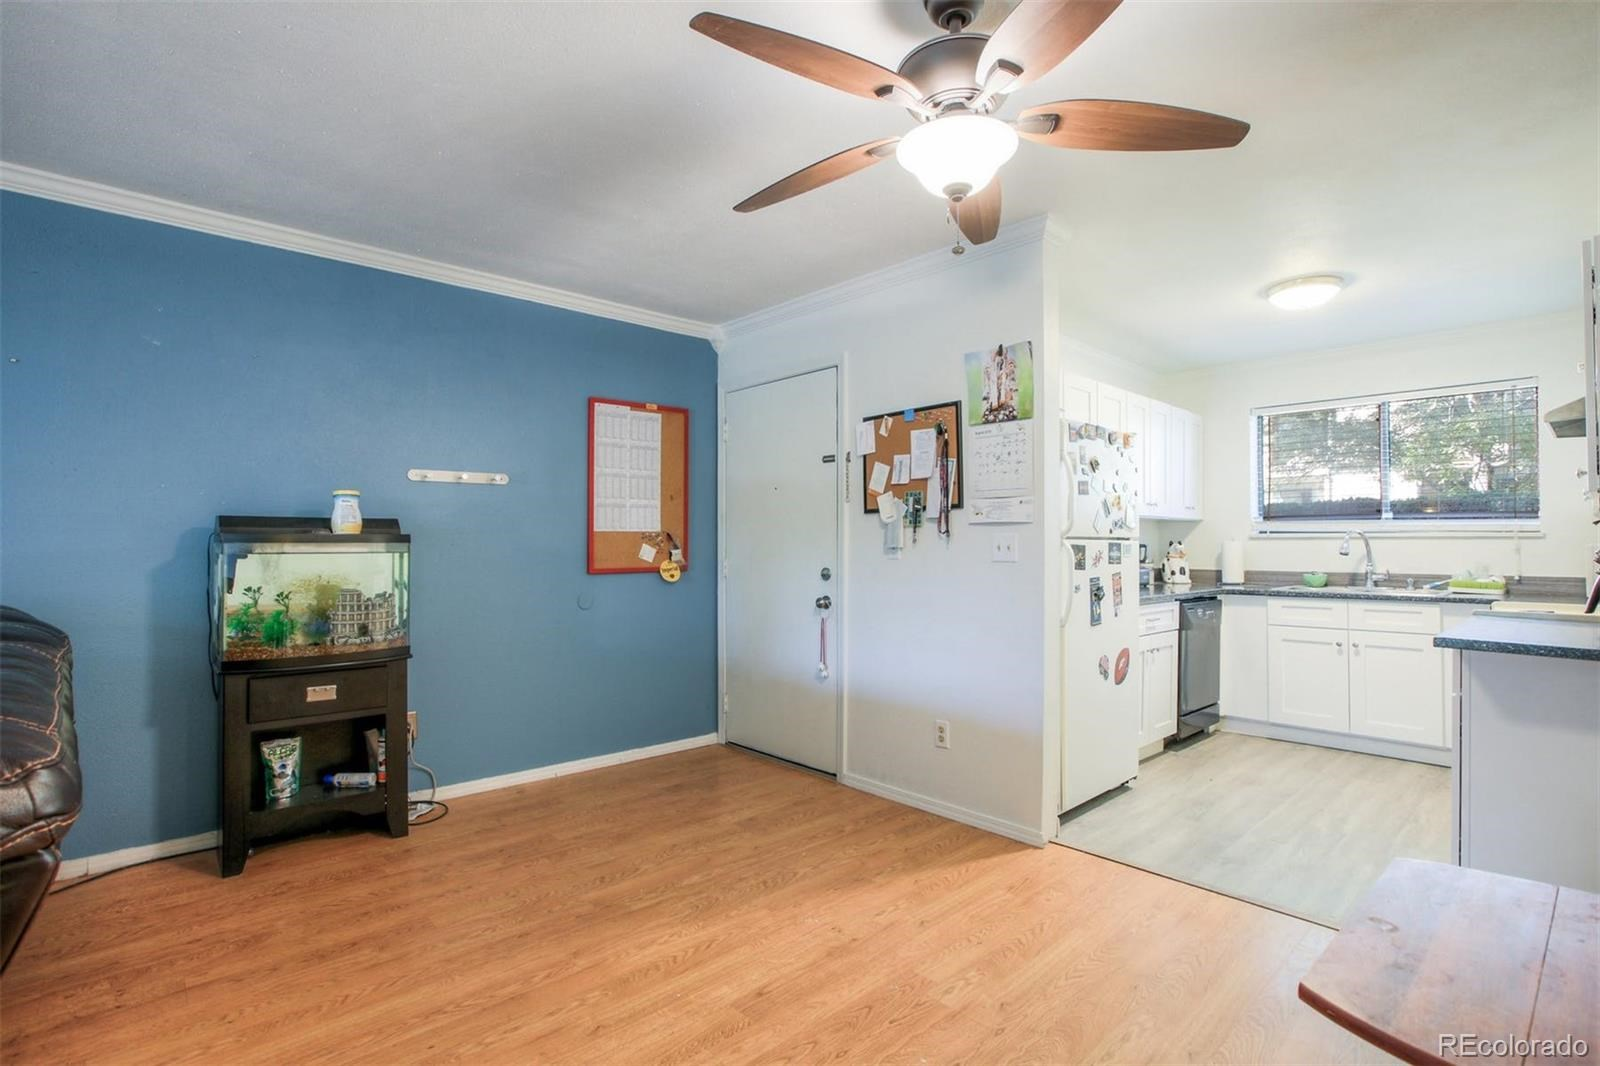 MLS# 2672185 - 7 - 3558 S Depew Street #101, Lakewood, CO 80235